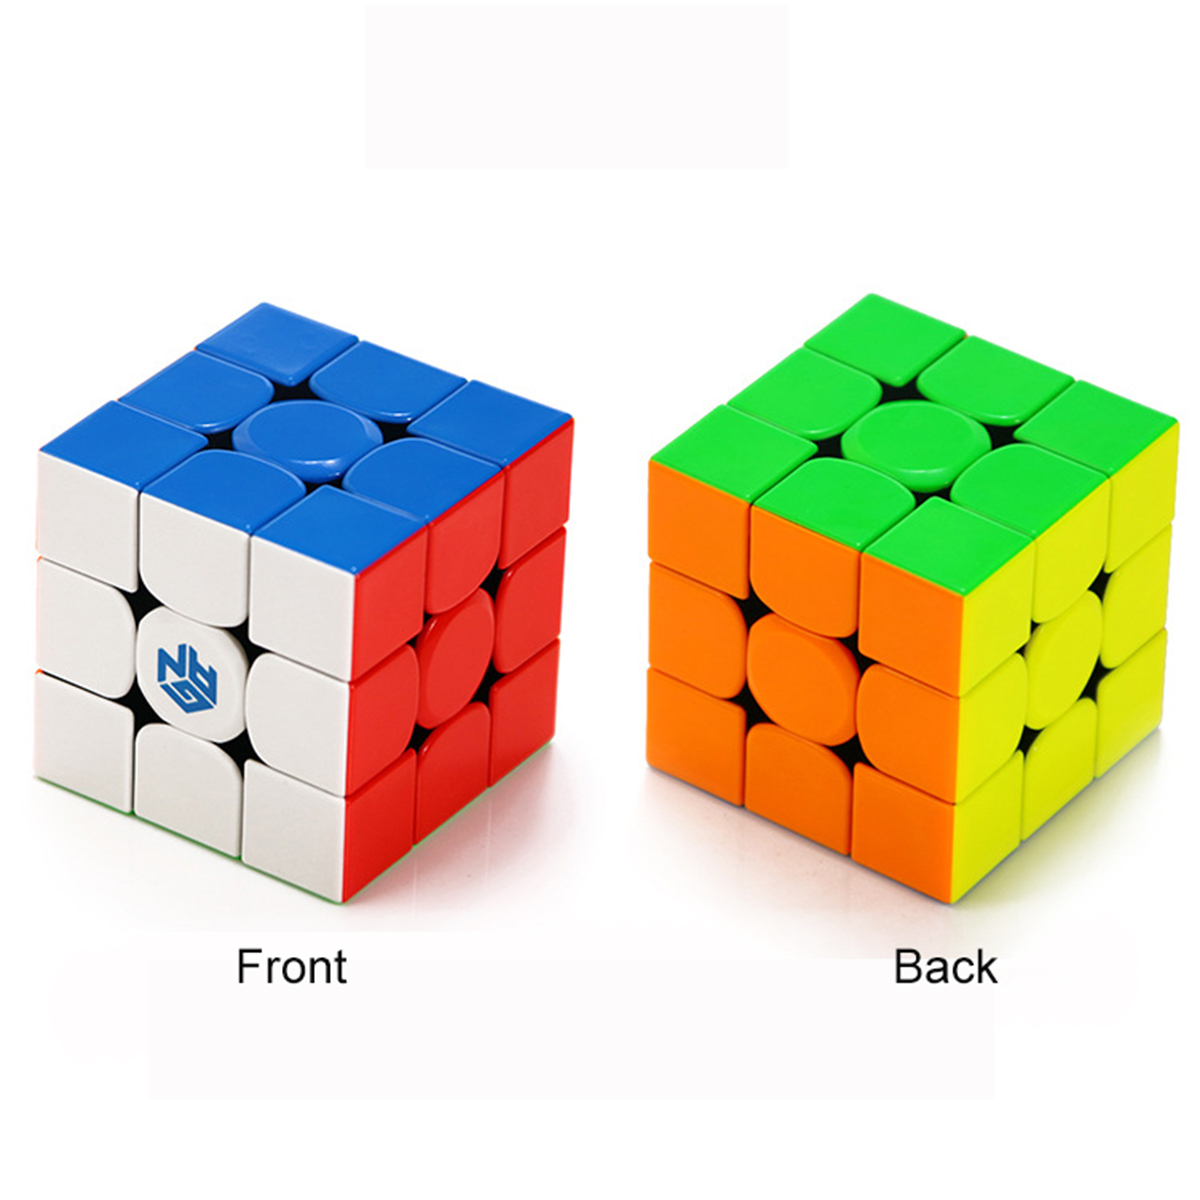 Gan GAN354M 3x3x3 Stickerless Magnetic Gan 354 M Magic Cube Speed Puzzle Game Cubes Educational Toys For Children Christmas Gift